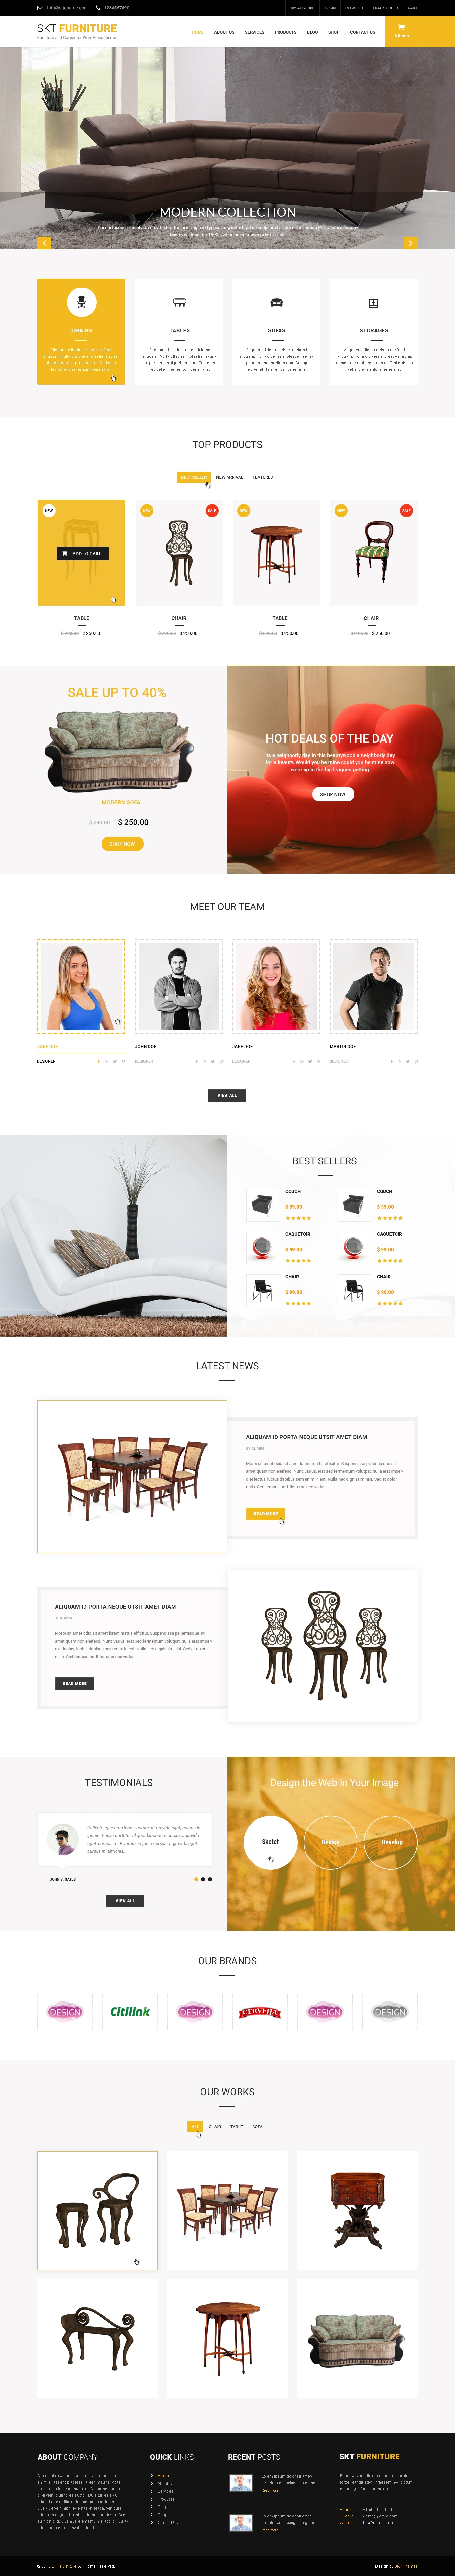 What is the best premium WordPress theme for an online furniture